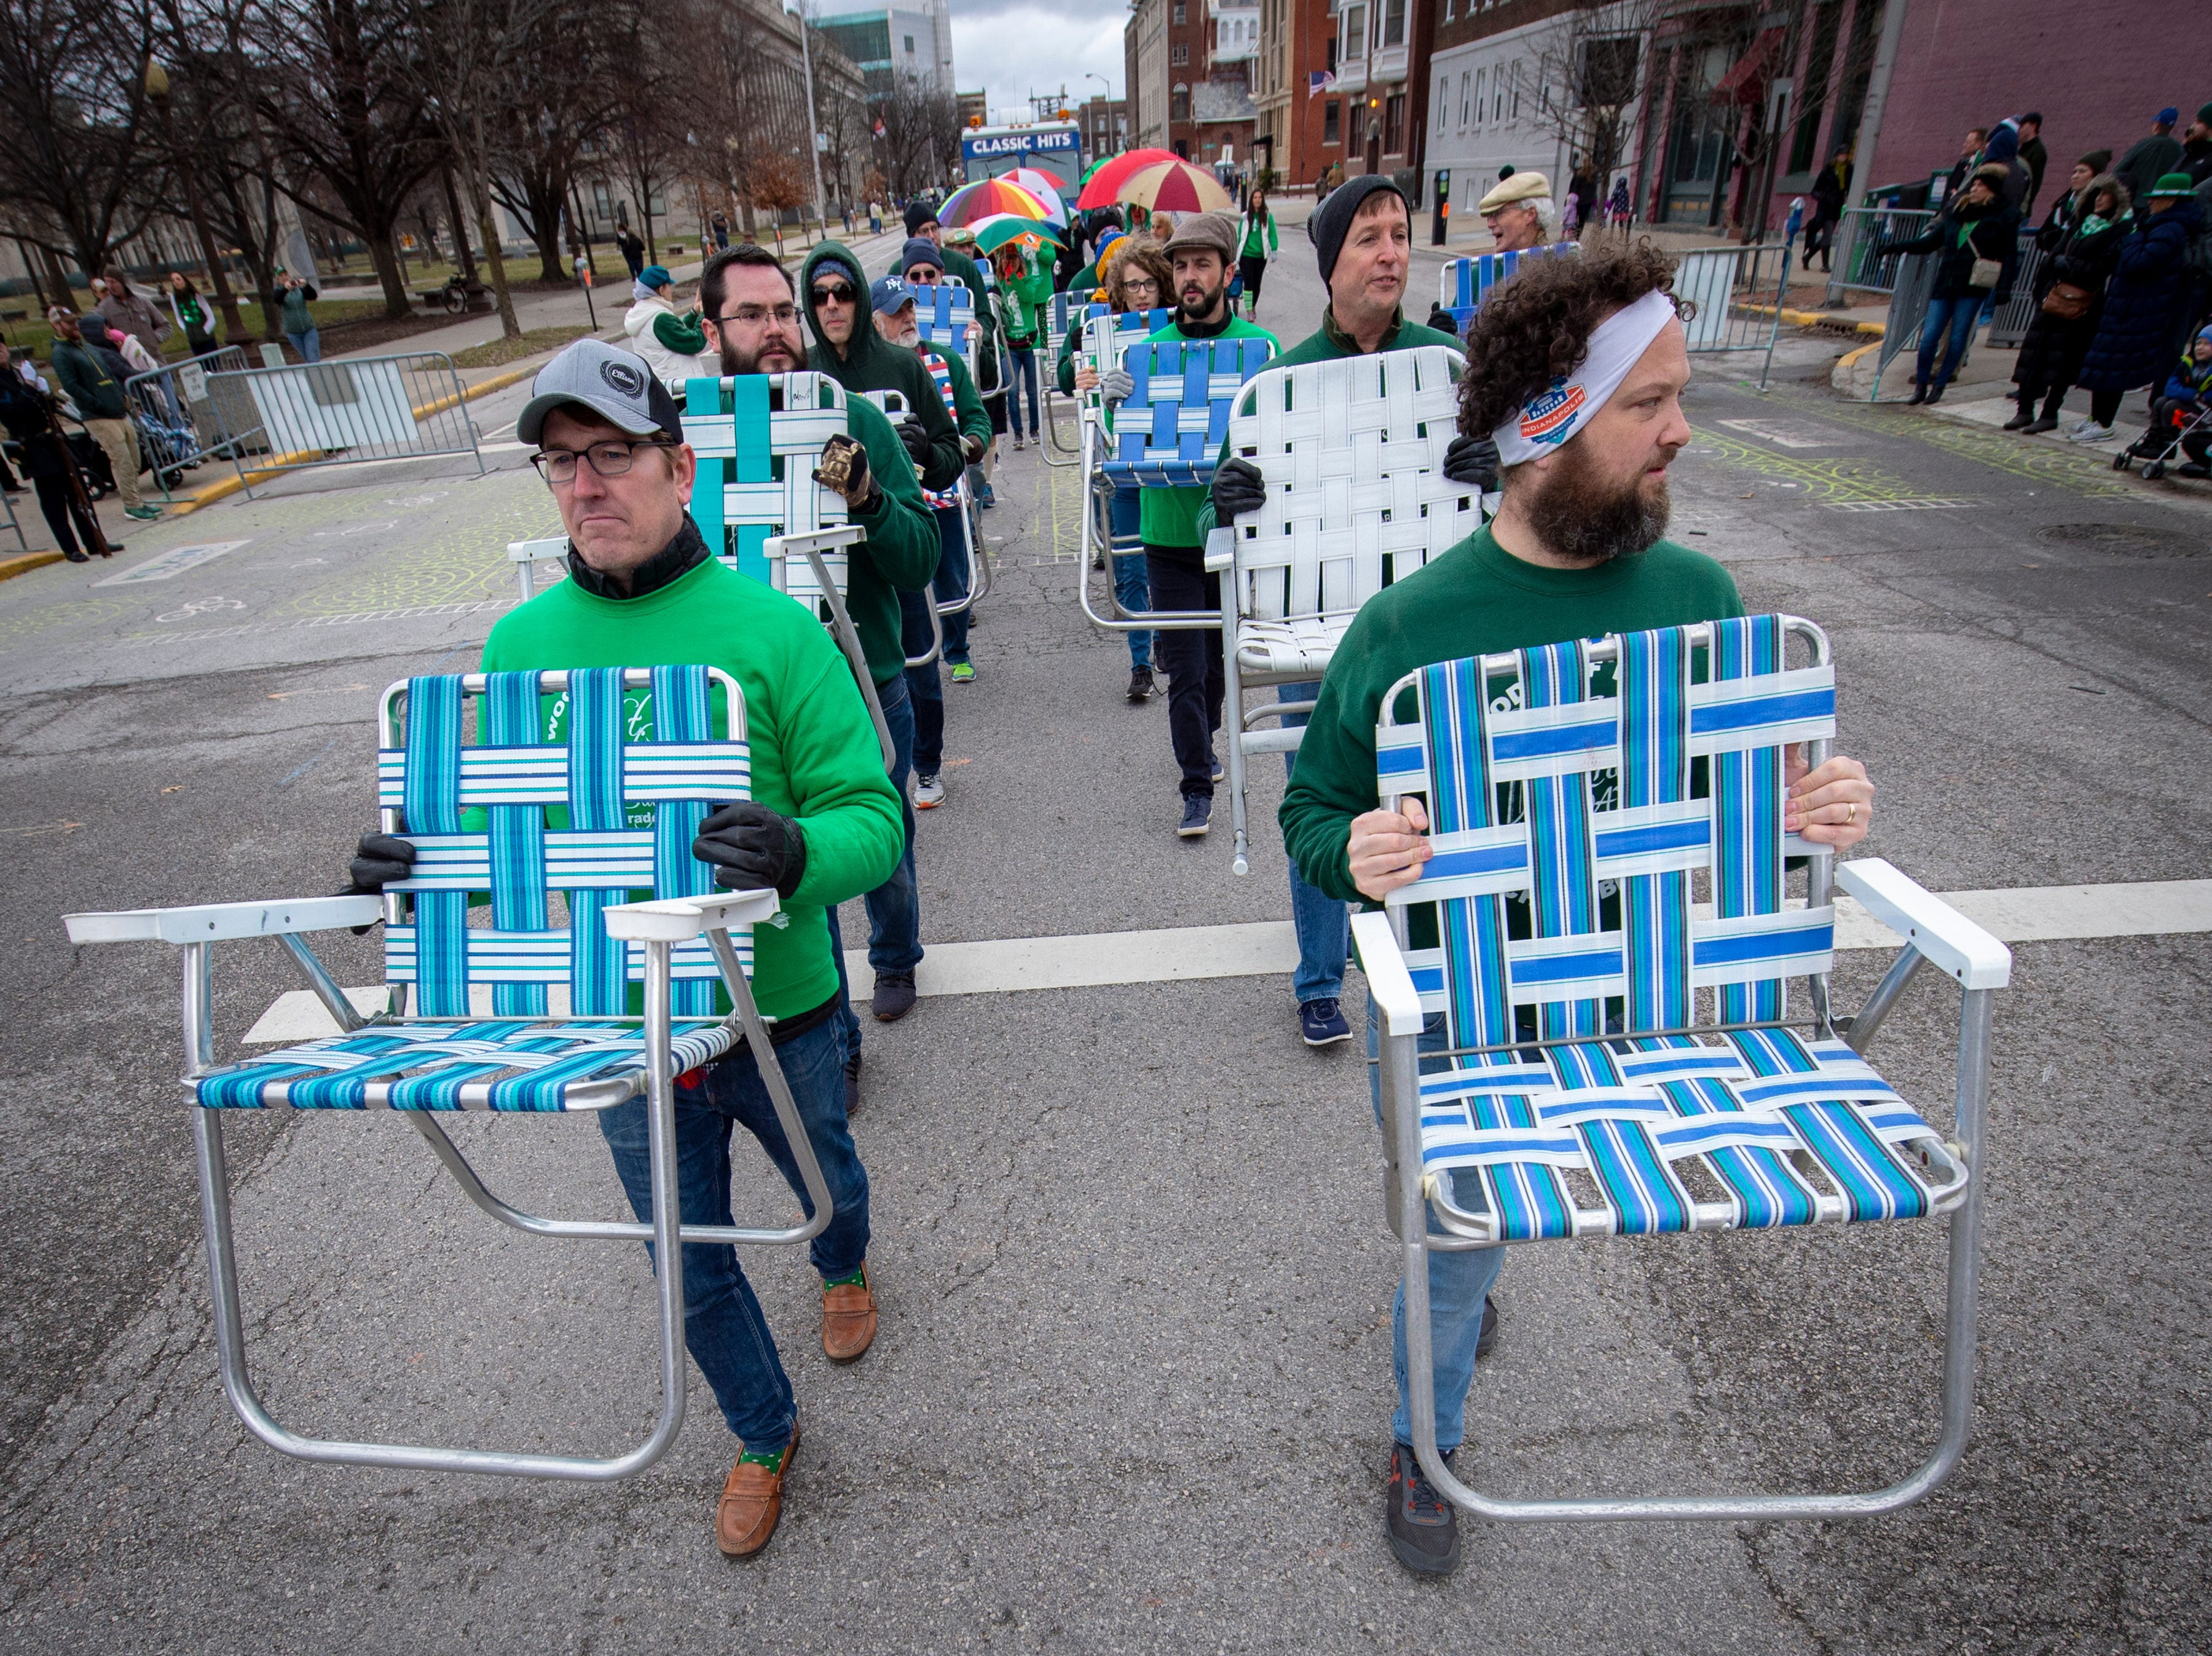 Members of the Woodruff Place Lawn Chair Brigade perform on the parade route. The 39th annual St. Patrick's Day Parade navigated the streets of Indianapolis, Friday, March 15, 2019.